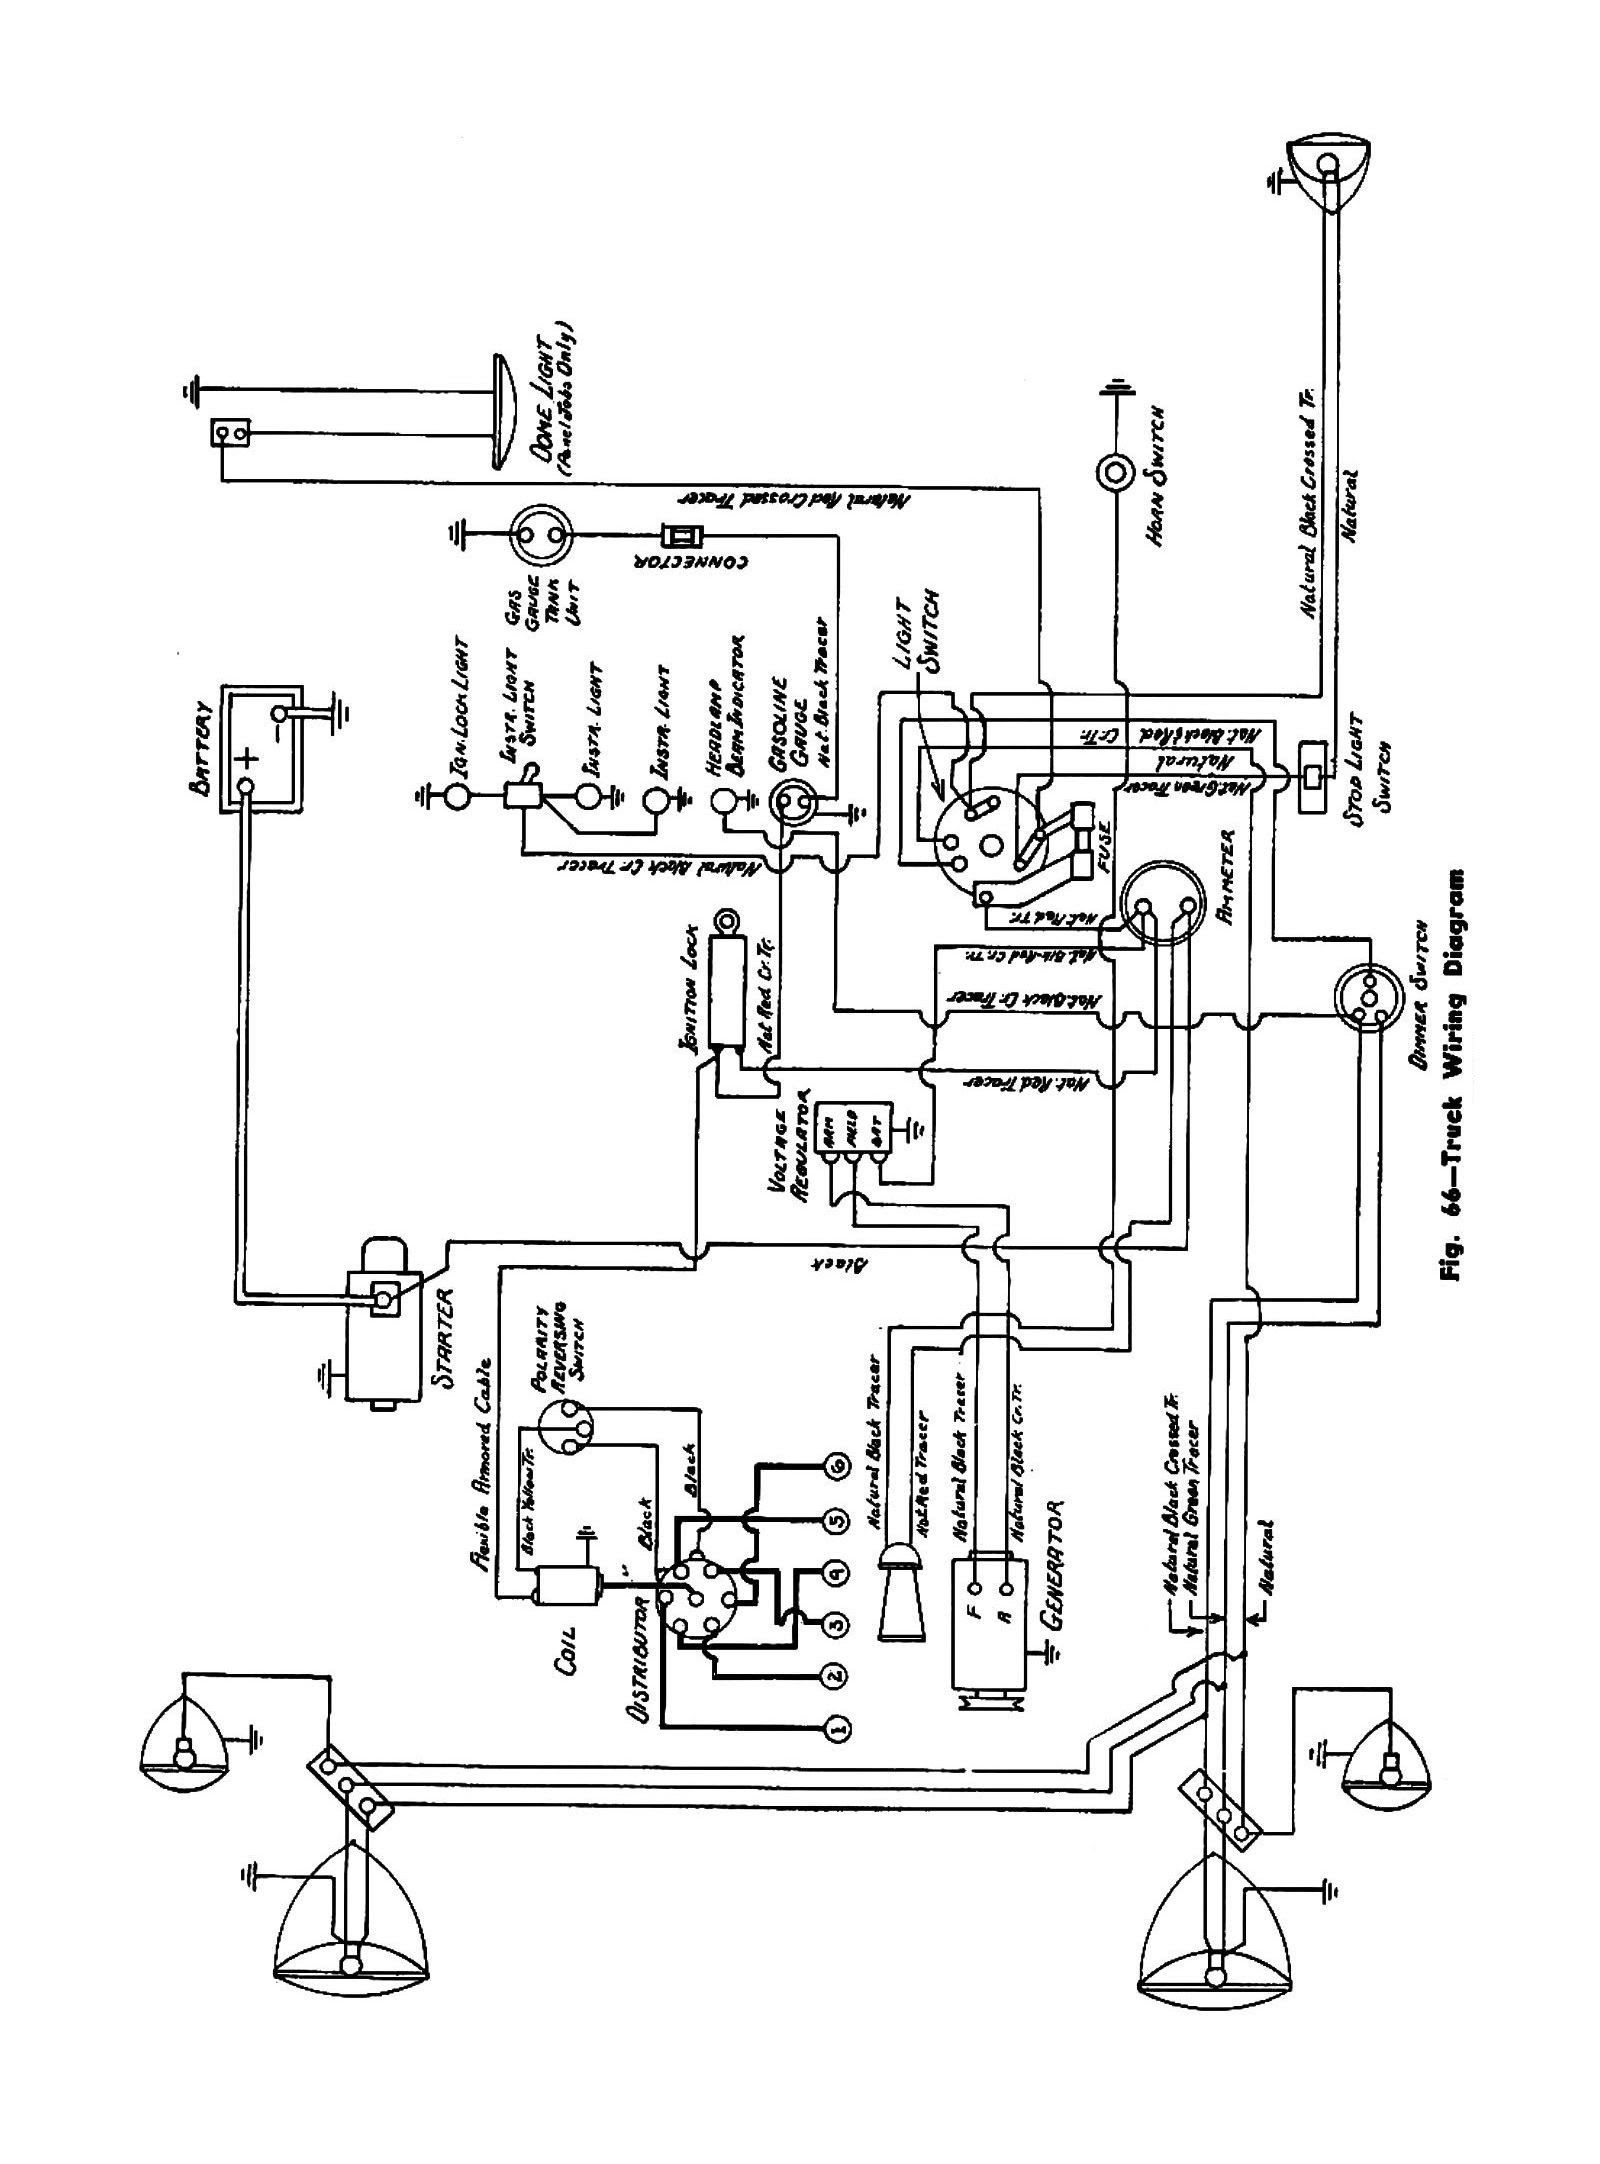 1977 Dodge Ignition Wiring Harness Connector Datsun 1600 Starter Wiring Diagram For Wiring Diagram Schematics